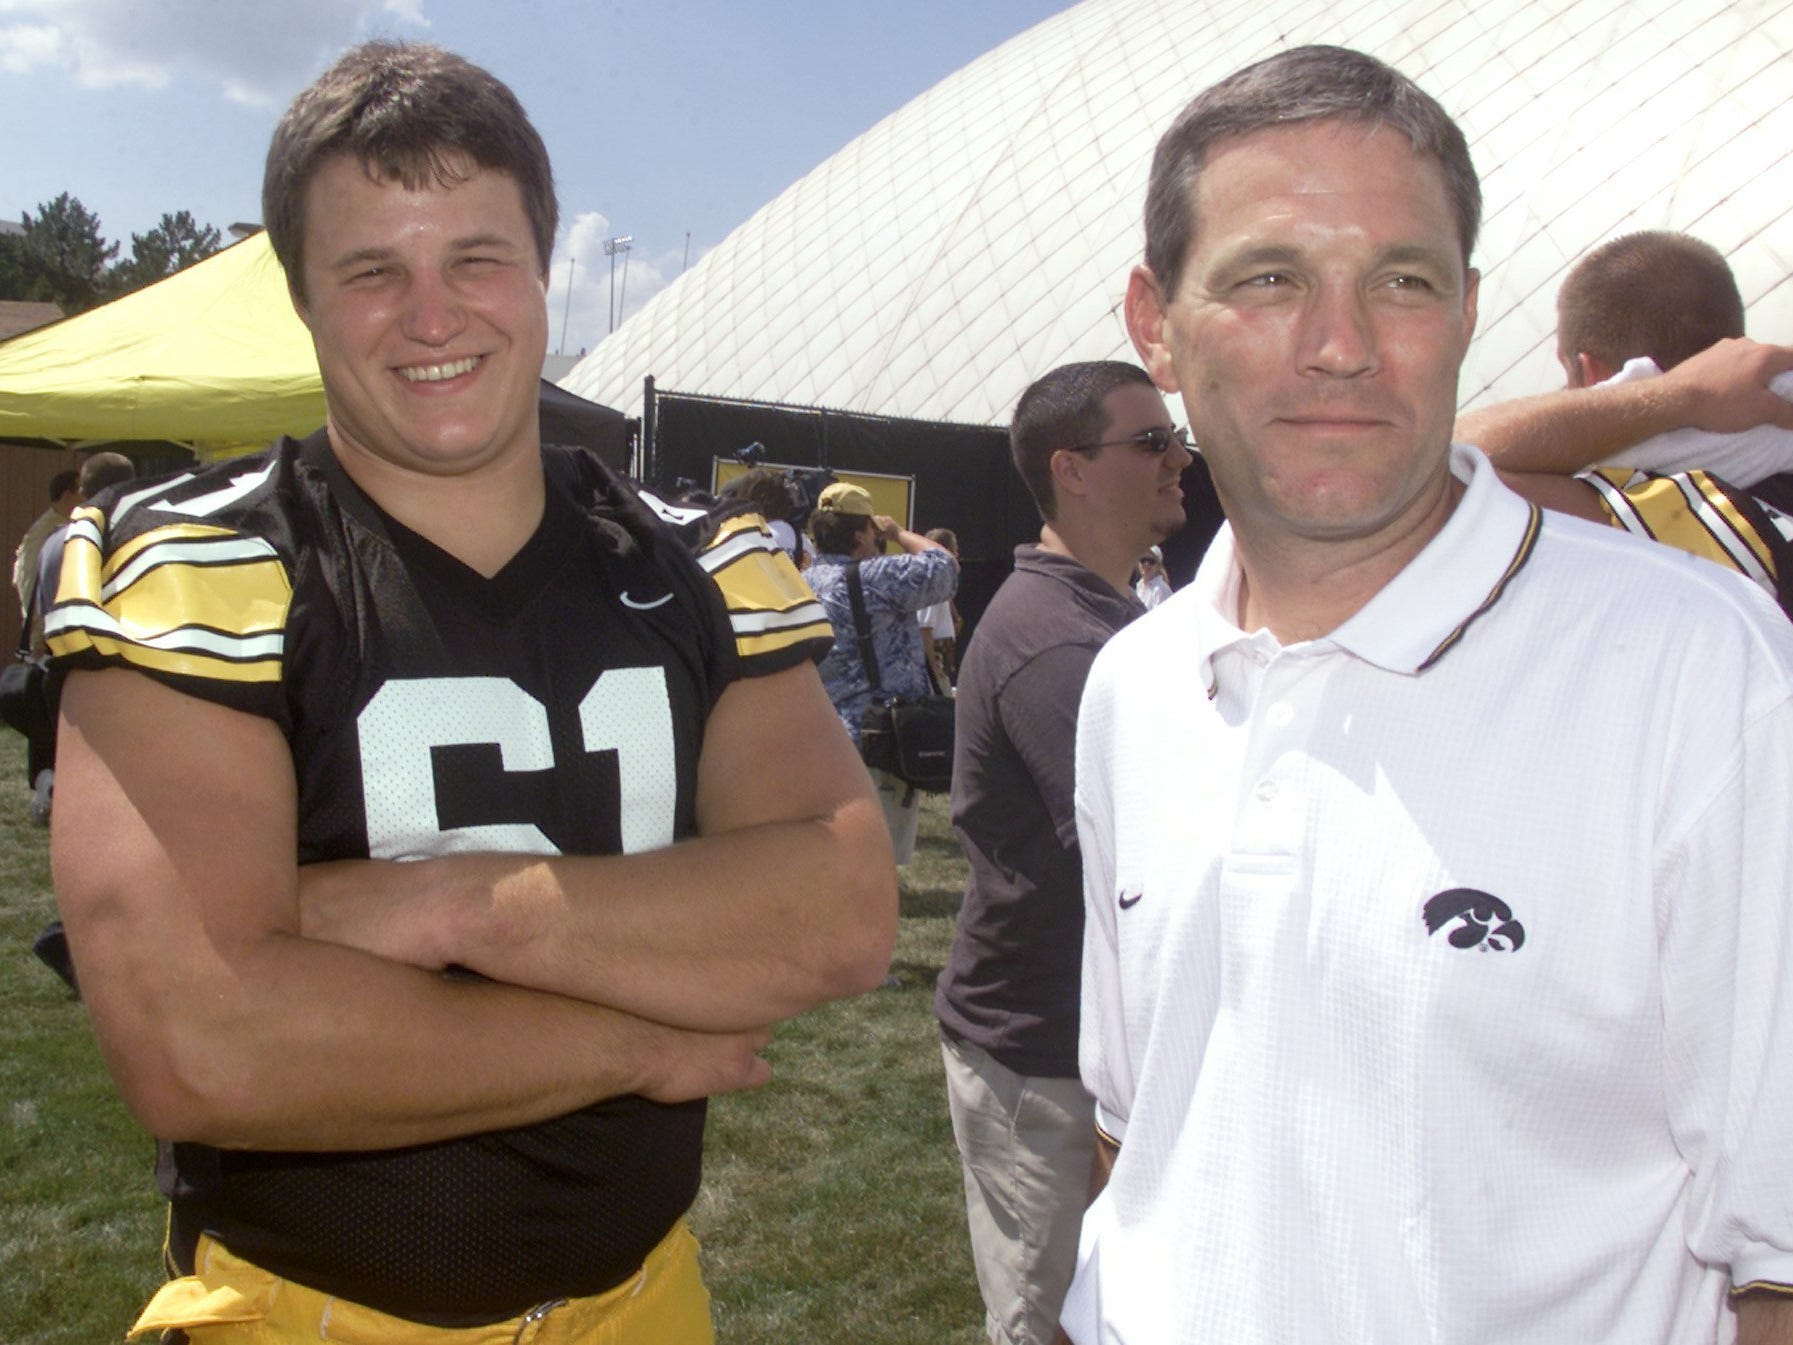 From 2003: Iowa offensive lineman Brian Ferentz laughs with his father, Iowa head coach Kirk Ferentz, during the team's media day Aug. 7, 2003, in Iowa City.